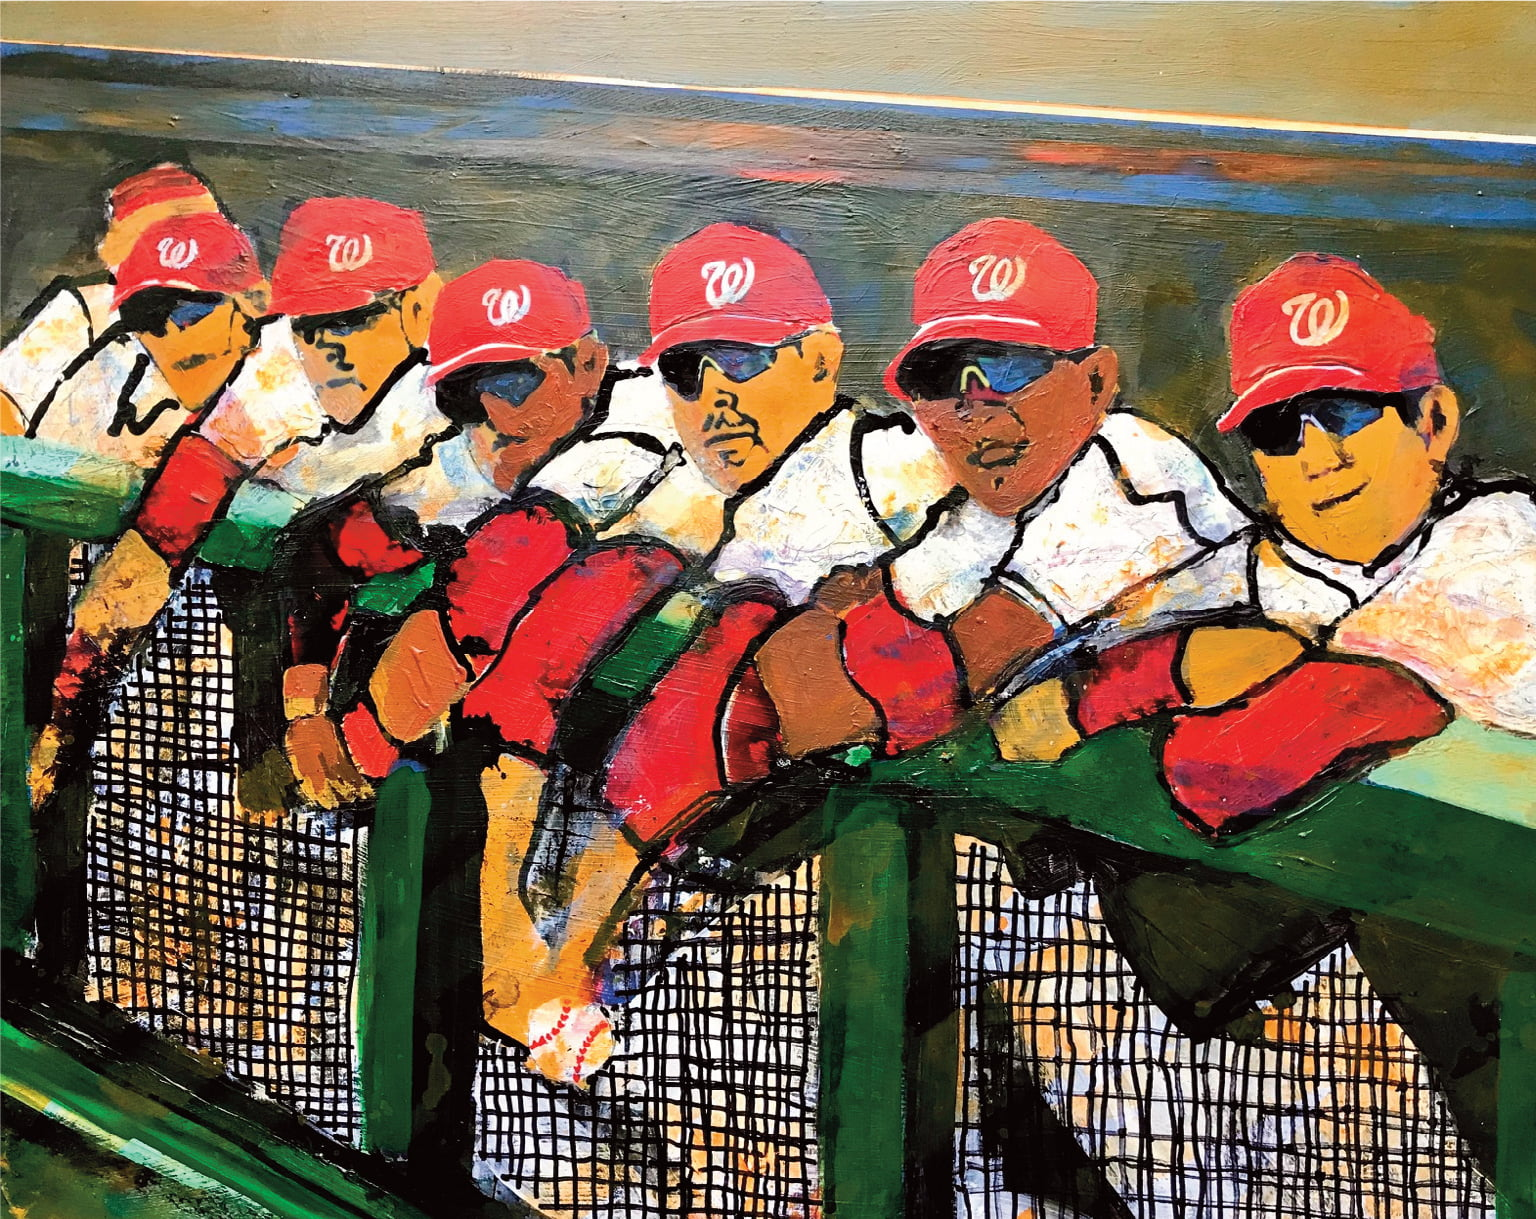 In the dugout, Mixed Media, 18×24